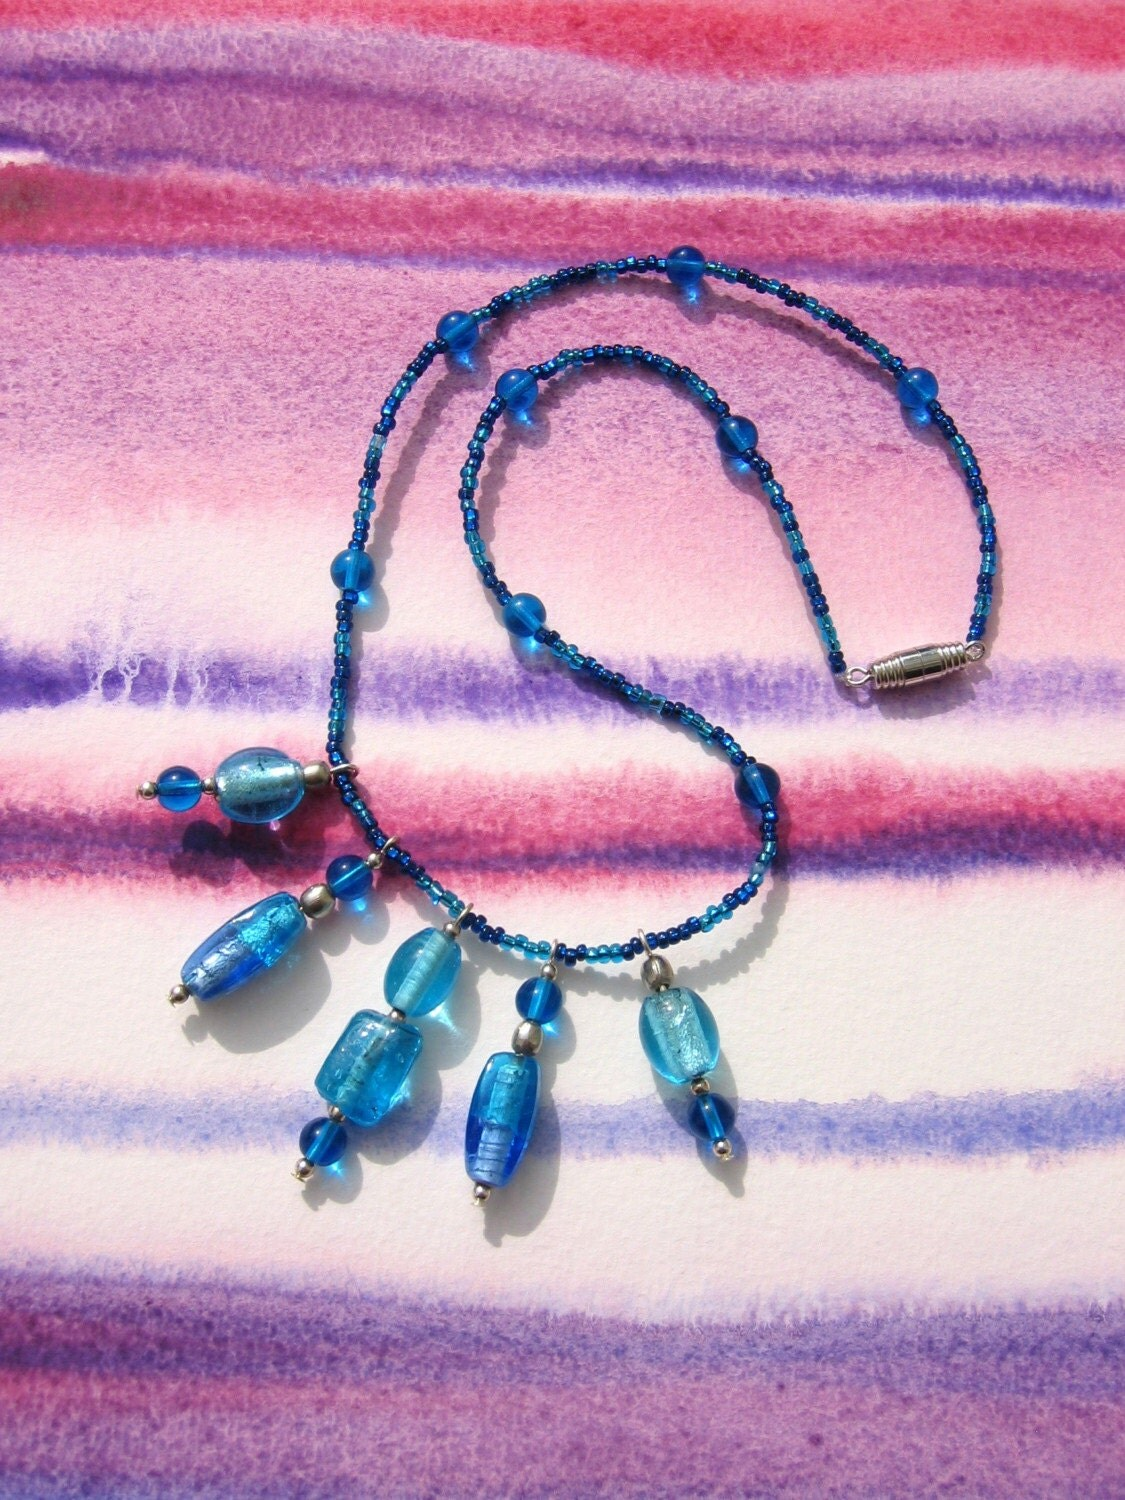 Sapphire blue glass necklace